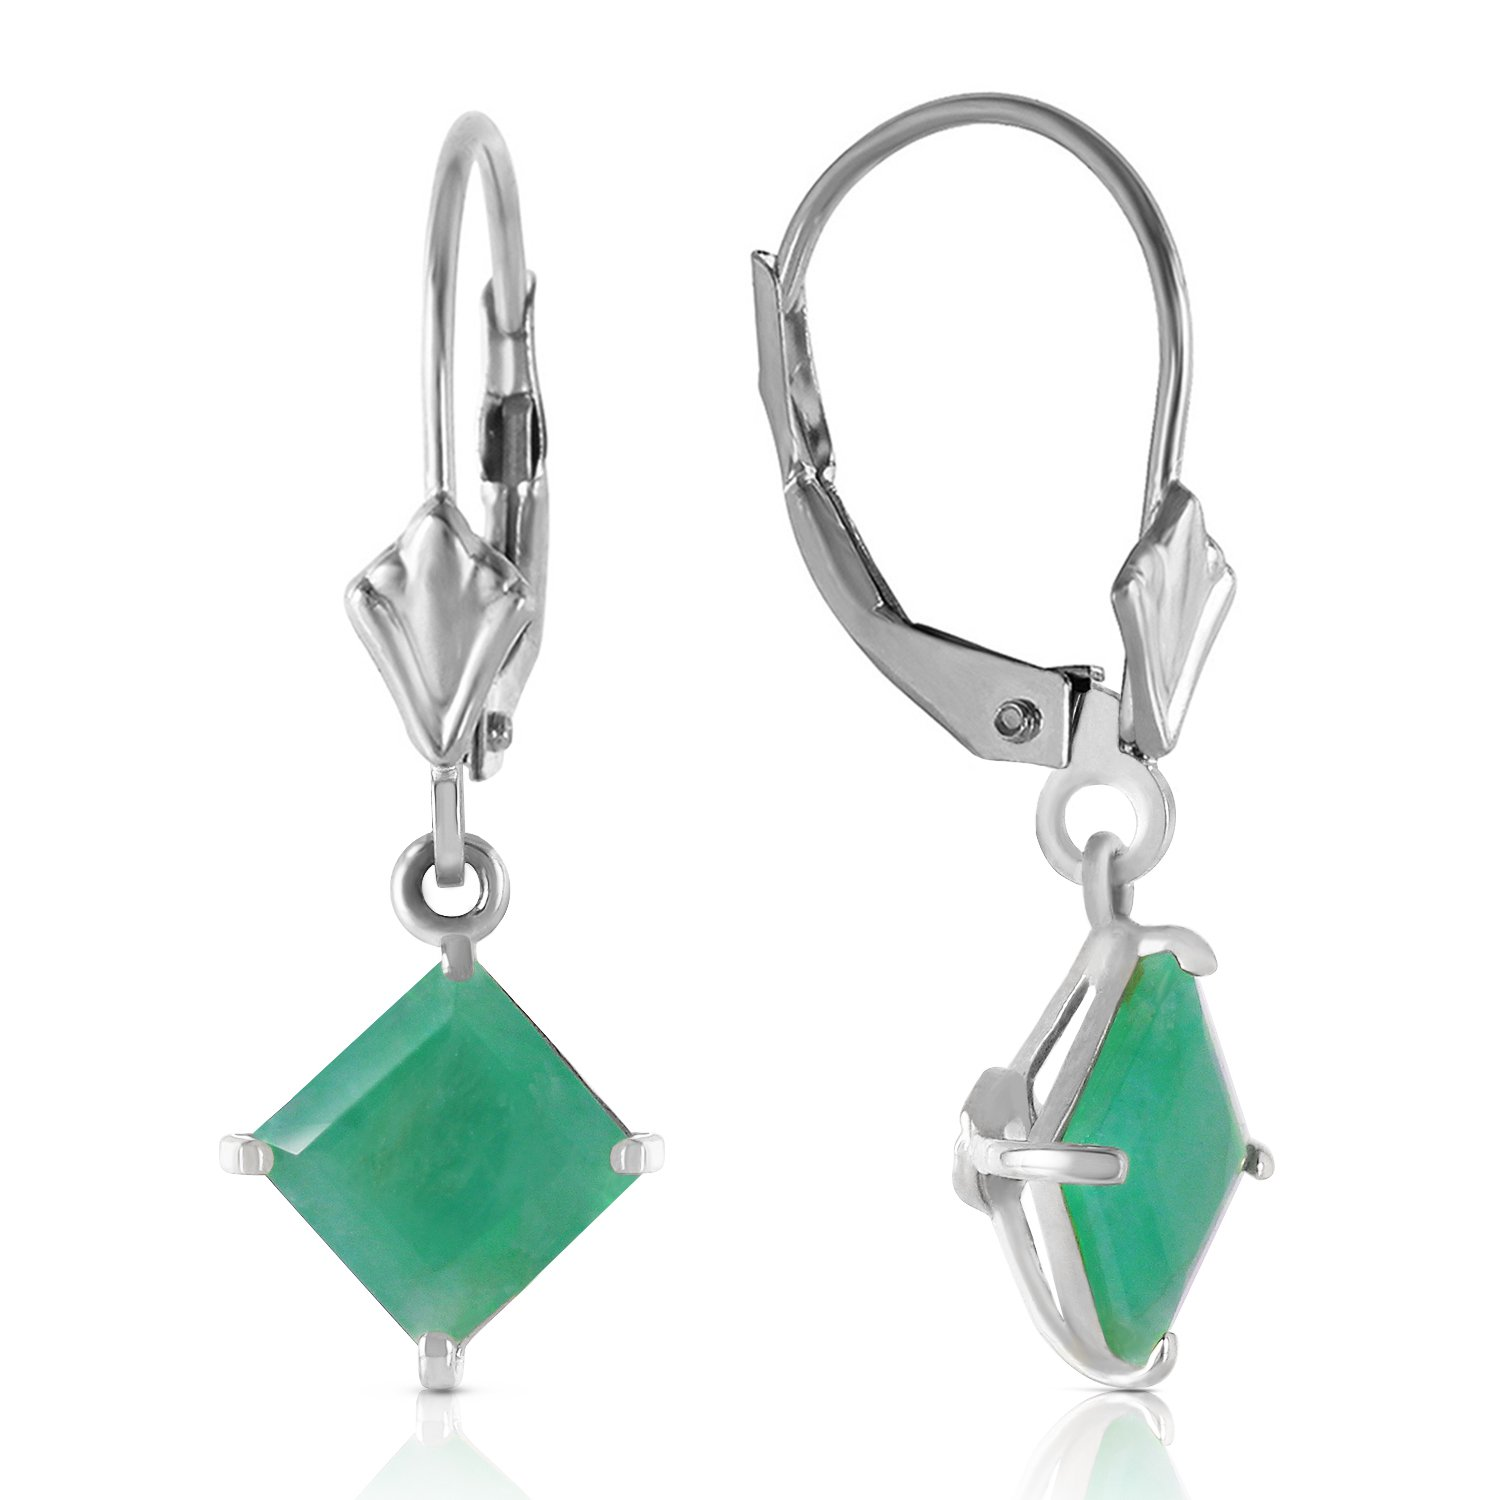 14k White Gold Leverback Earrings with Natural Emerald